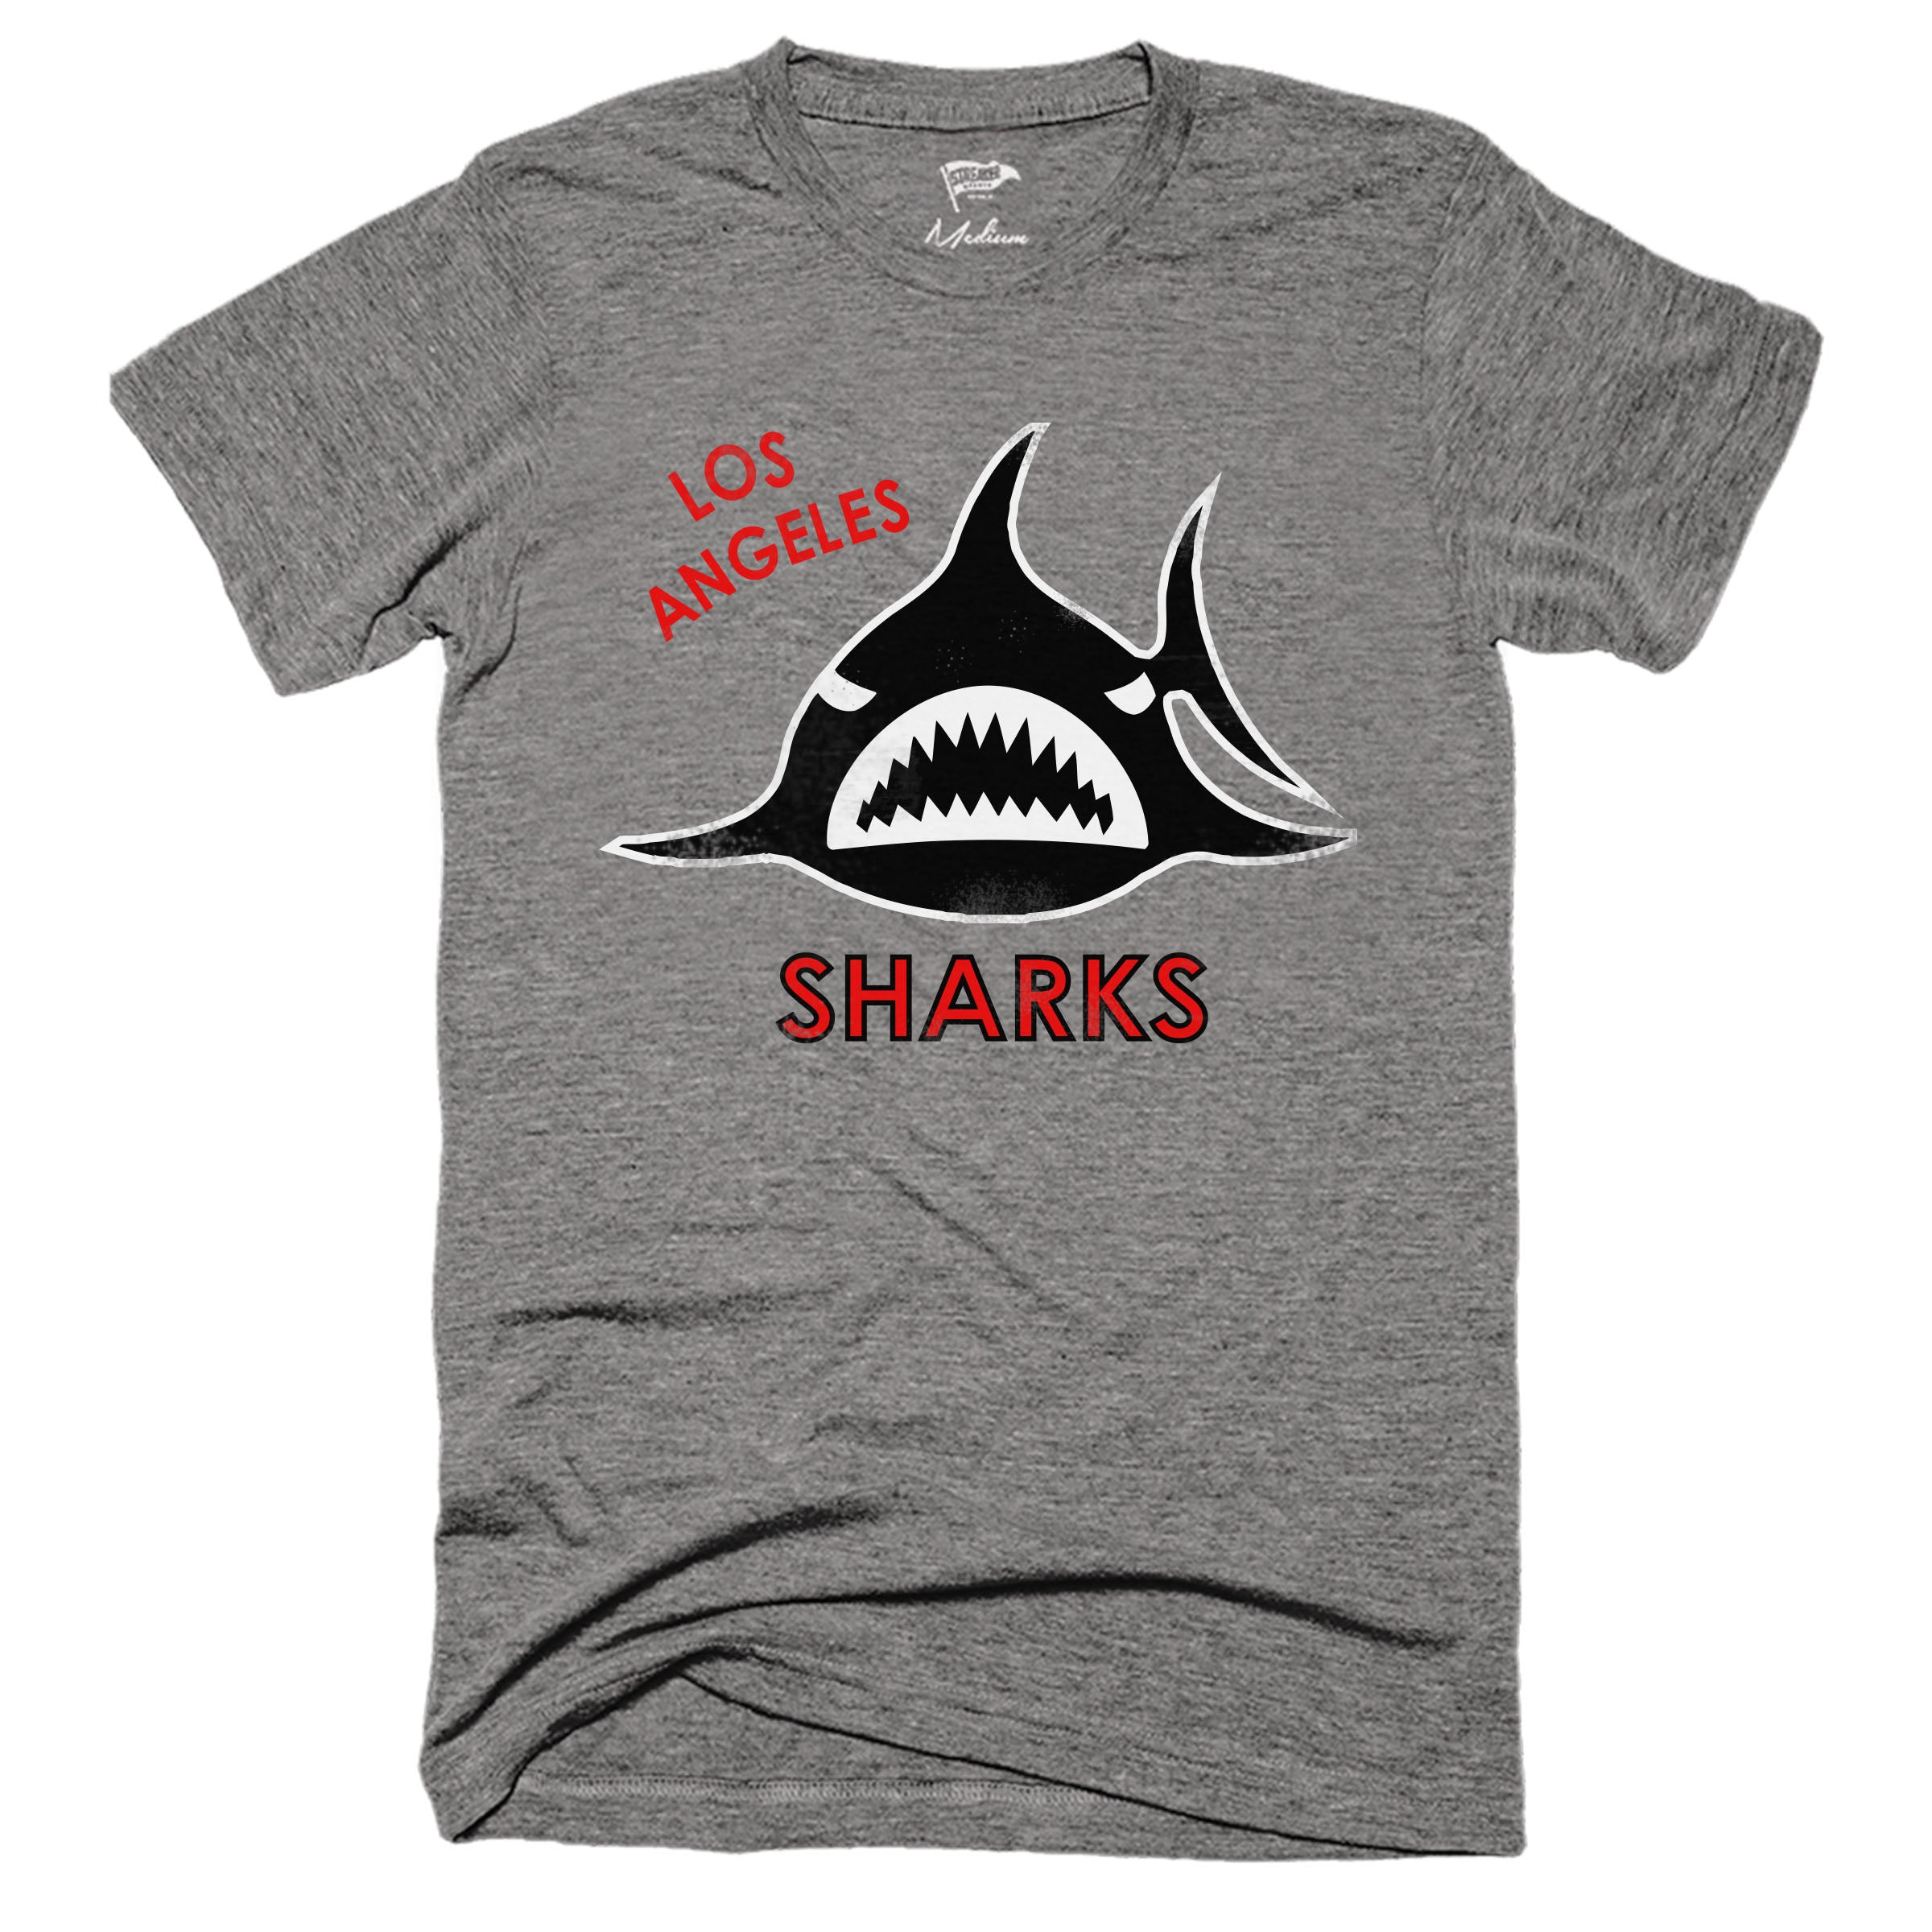 1972 Los Angeles Sharks Tee